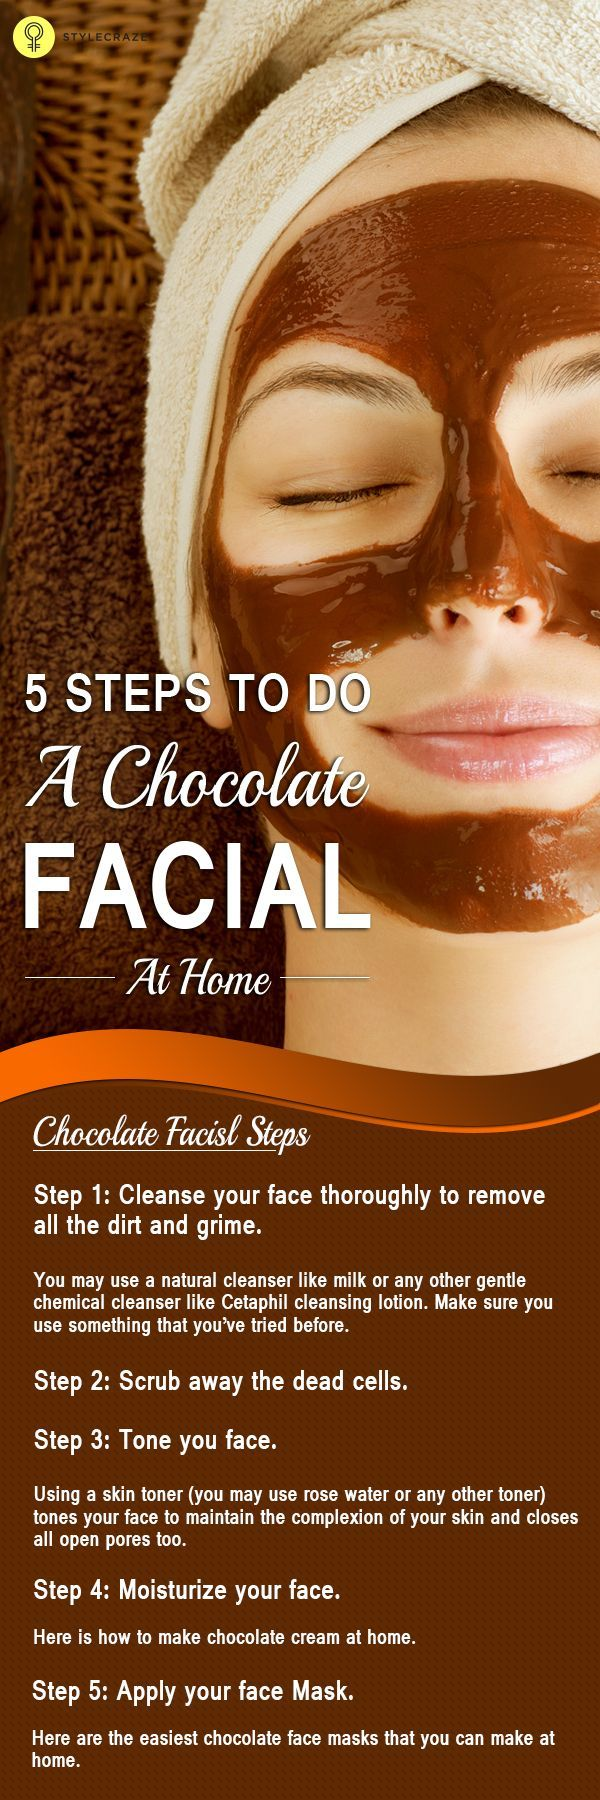 DIY Beauty Tips :   Illustration   Description   5 Simple Steps To Do A Chocolate Facial At Home    -Read More –    https://greatmag.net/diy/diy-beauty/diy-beauty-tips-5-simple-steps-to-do-a-chocolate-facial-at-home/